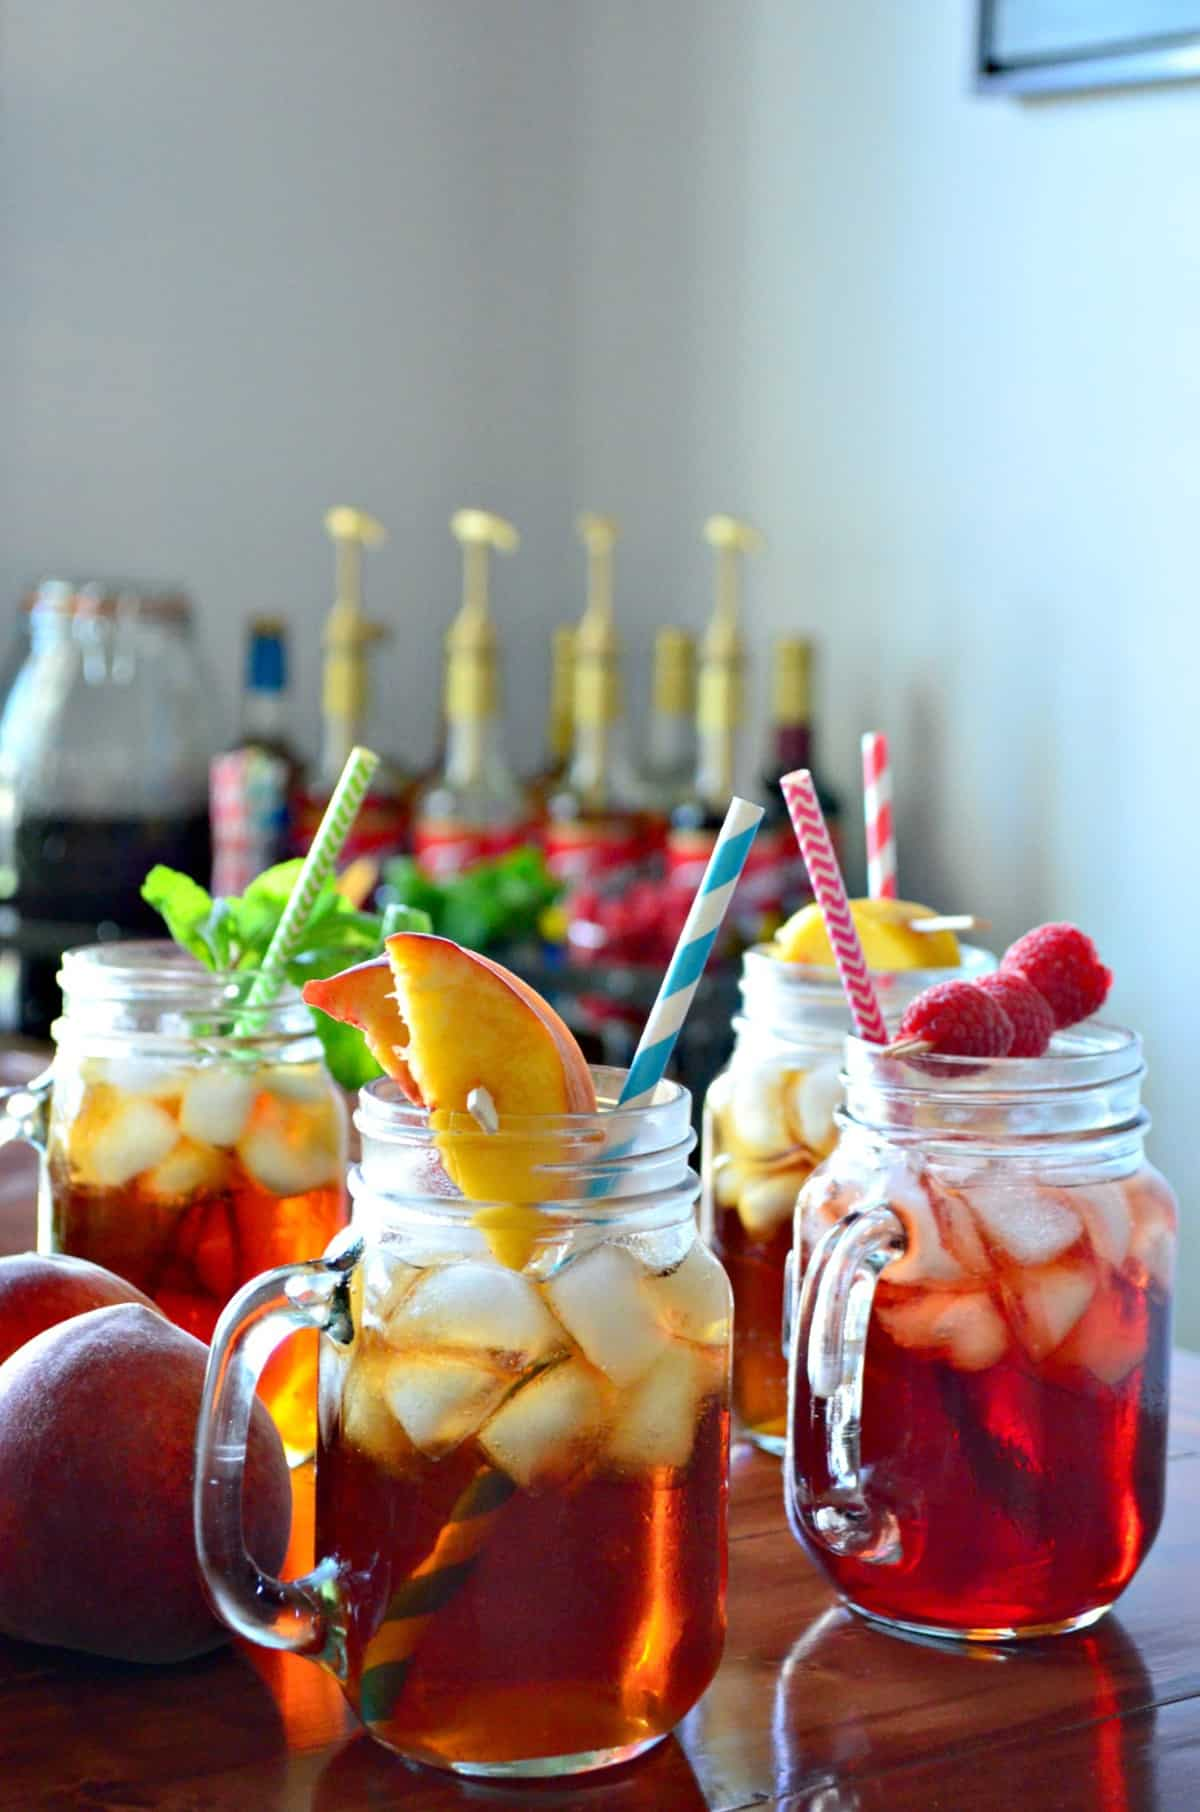 4 glass jars of iced tea, each garnished with a different item like peaches, raspberries, and mint.